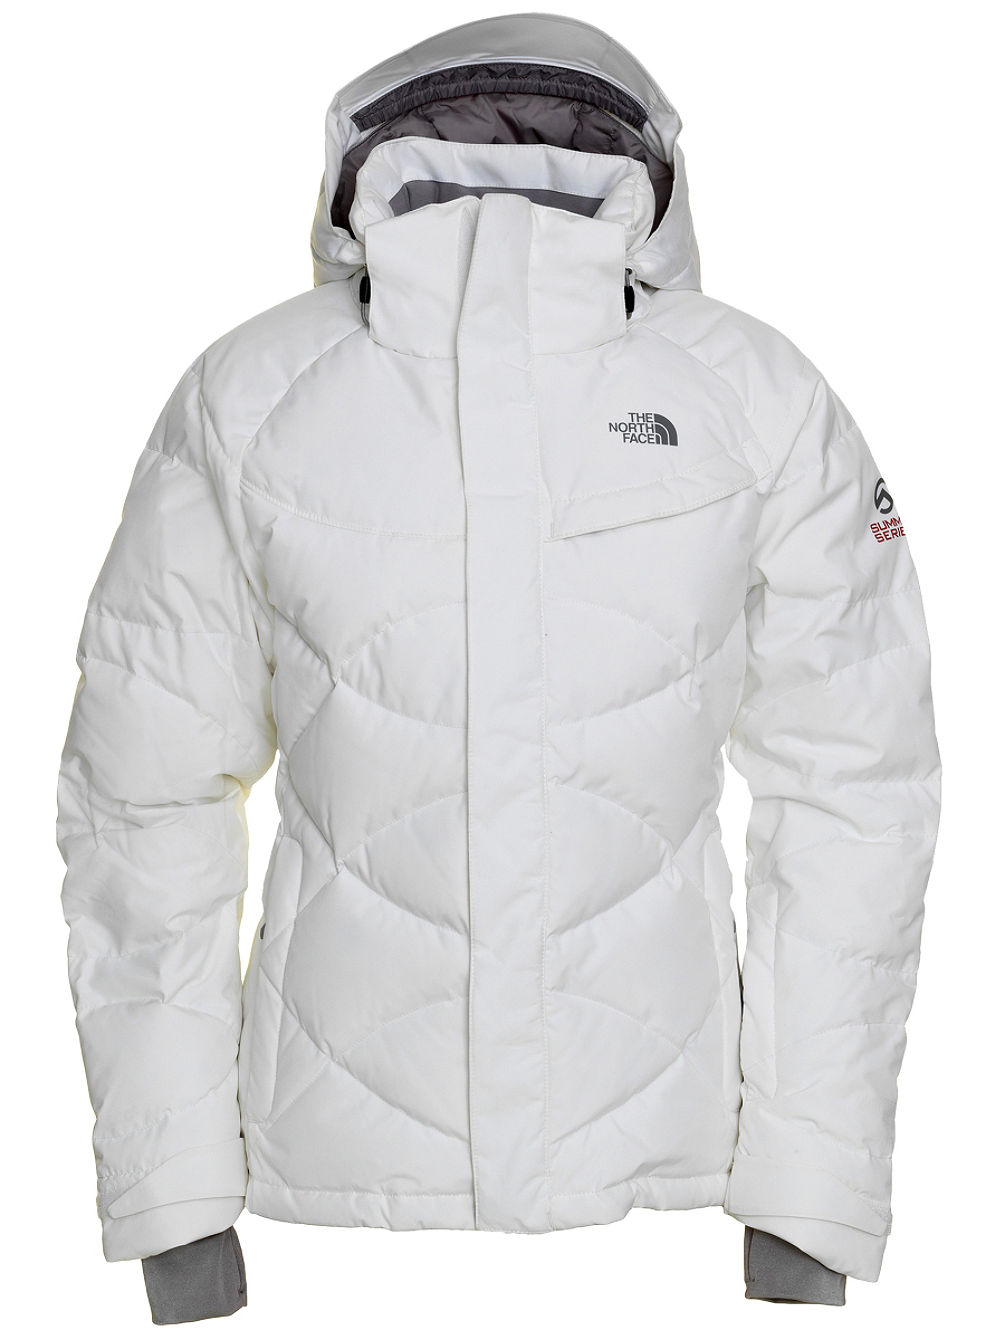 Buy THE NORTH FACE Helicity Down Jacket Women online at blue-tomato.com 756c38e2b